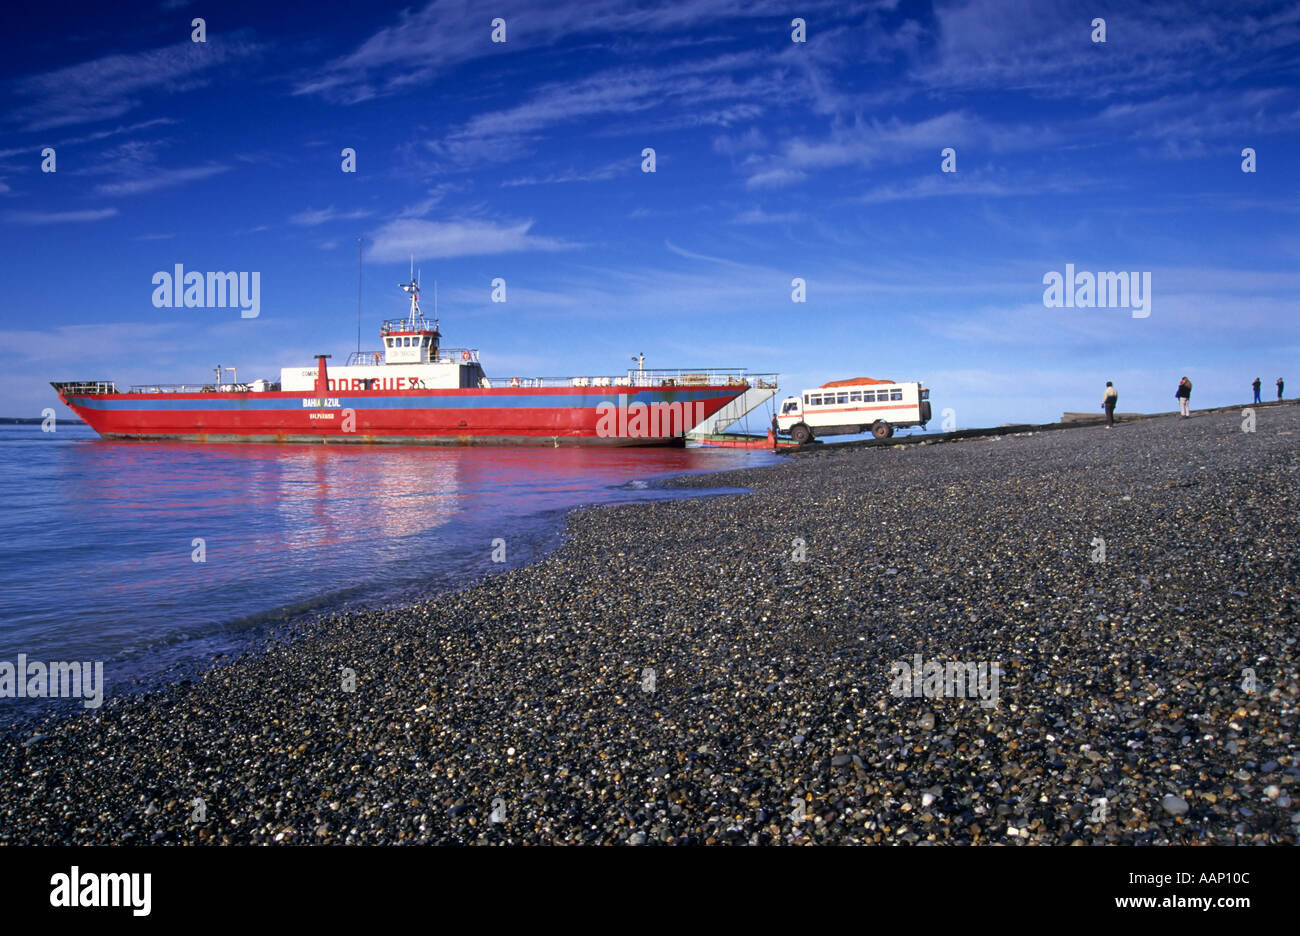 Loading the Ferry across the Straits of Magellan, Patagonia, Chile - Stock Image